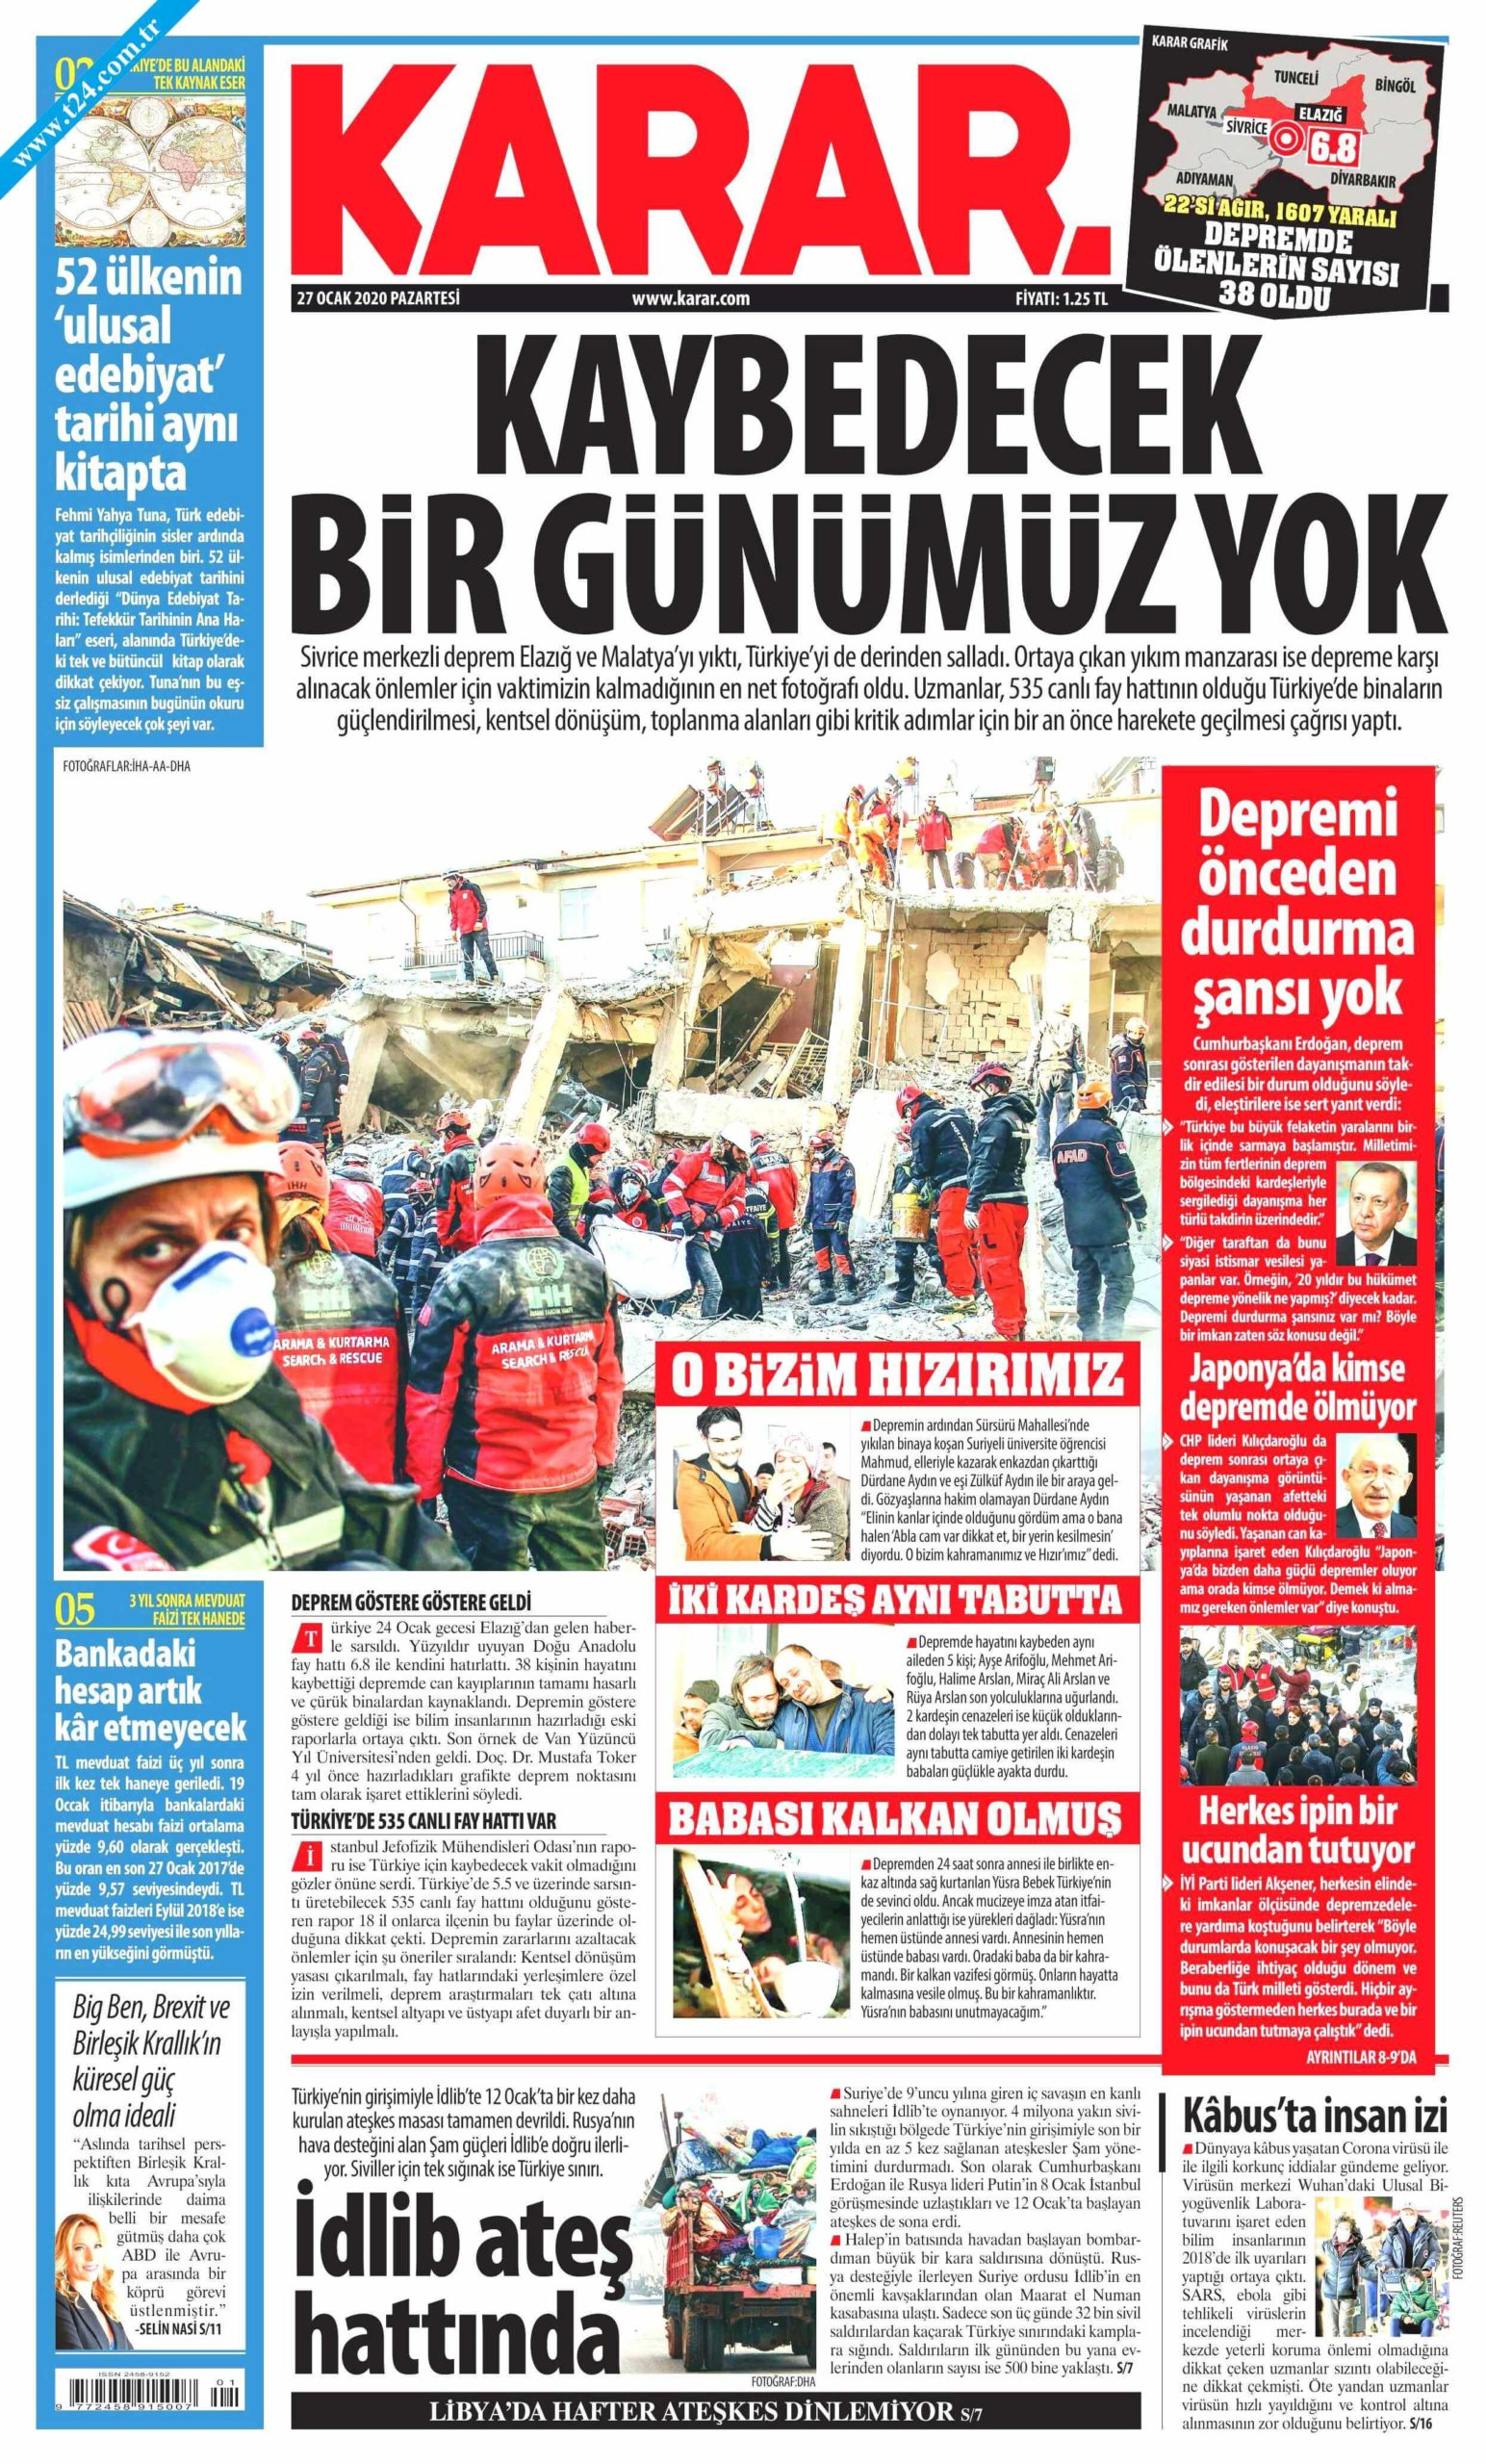 Turkish Newspapers 19 Karar Haber scaled